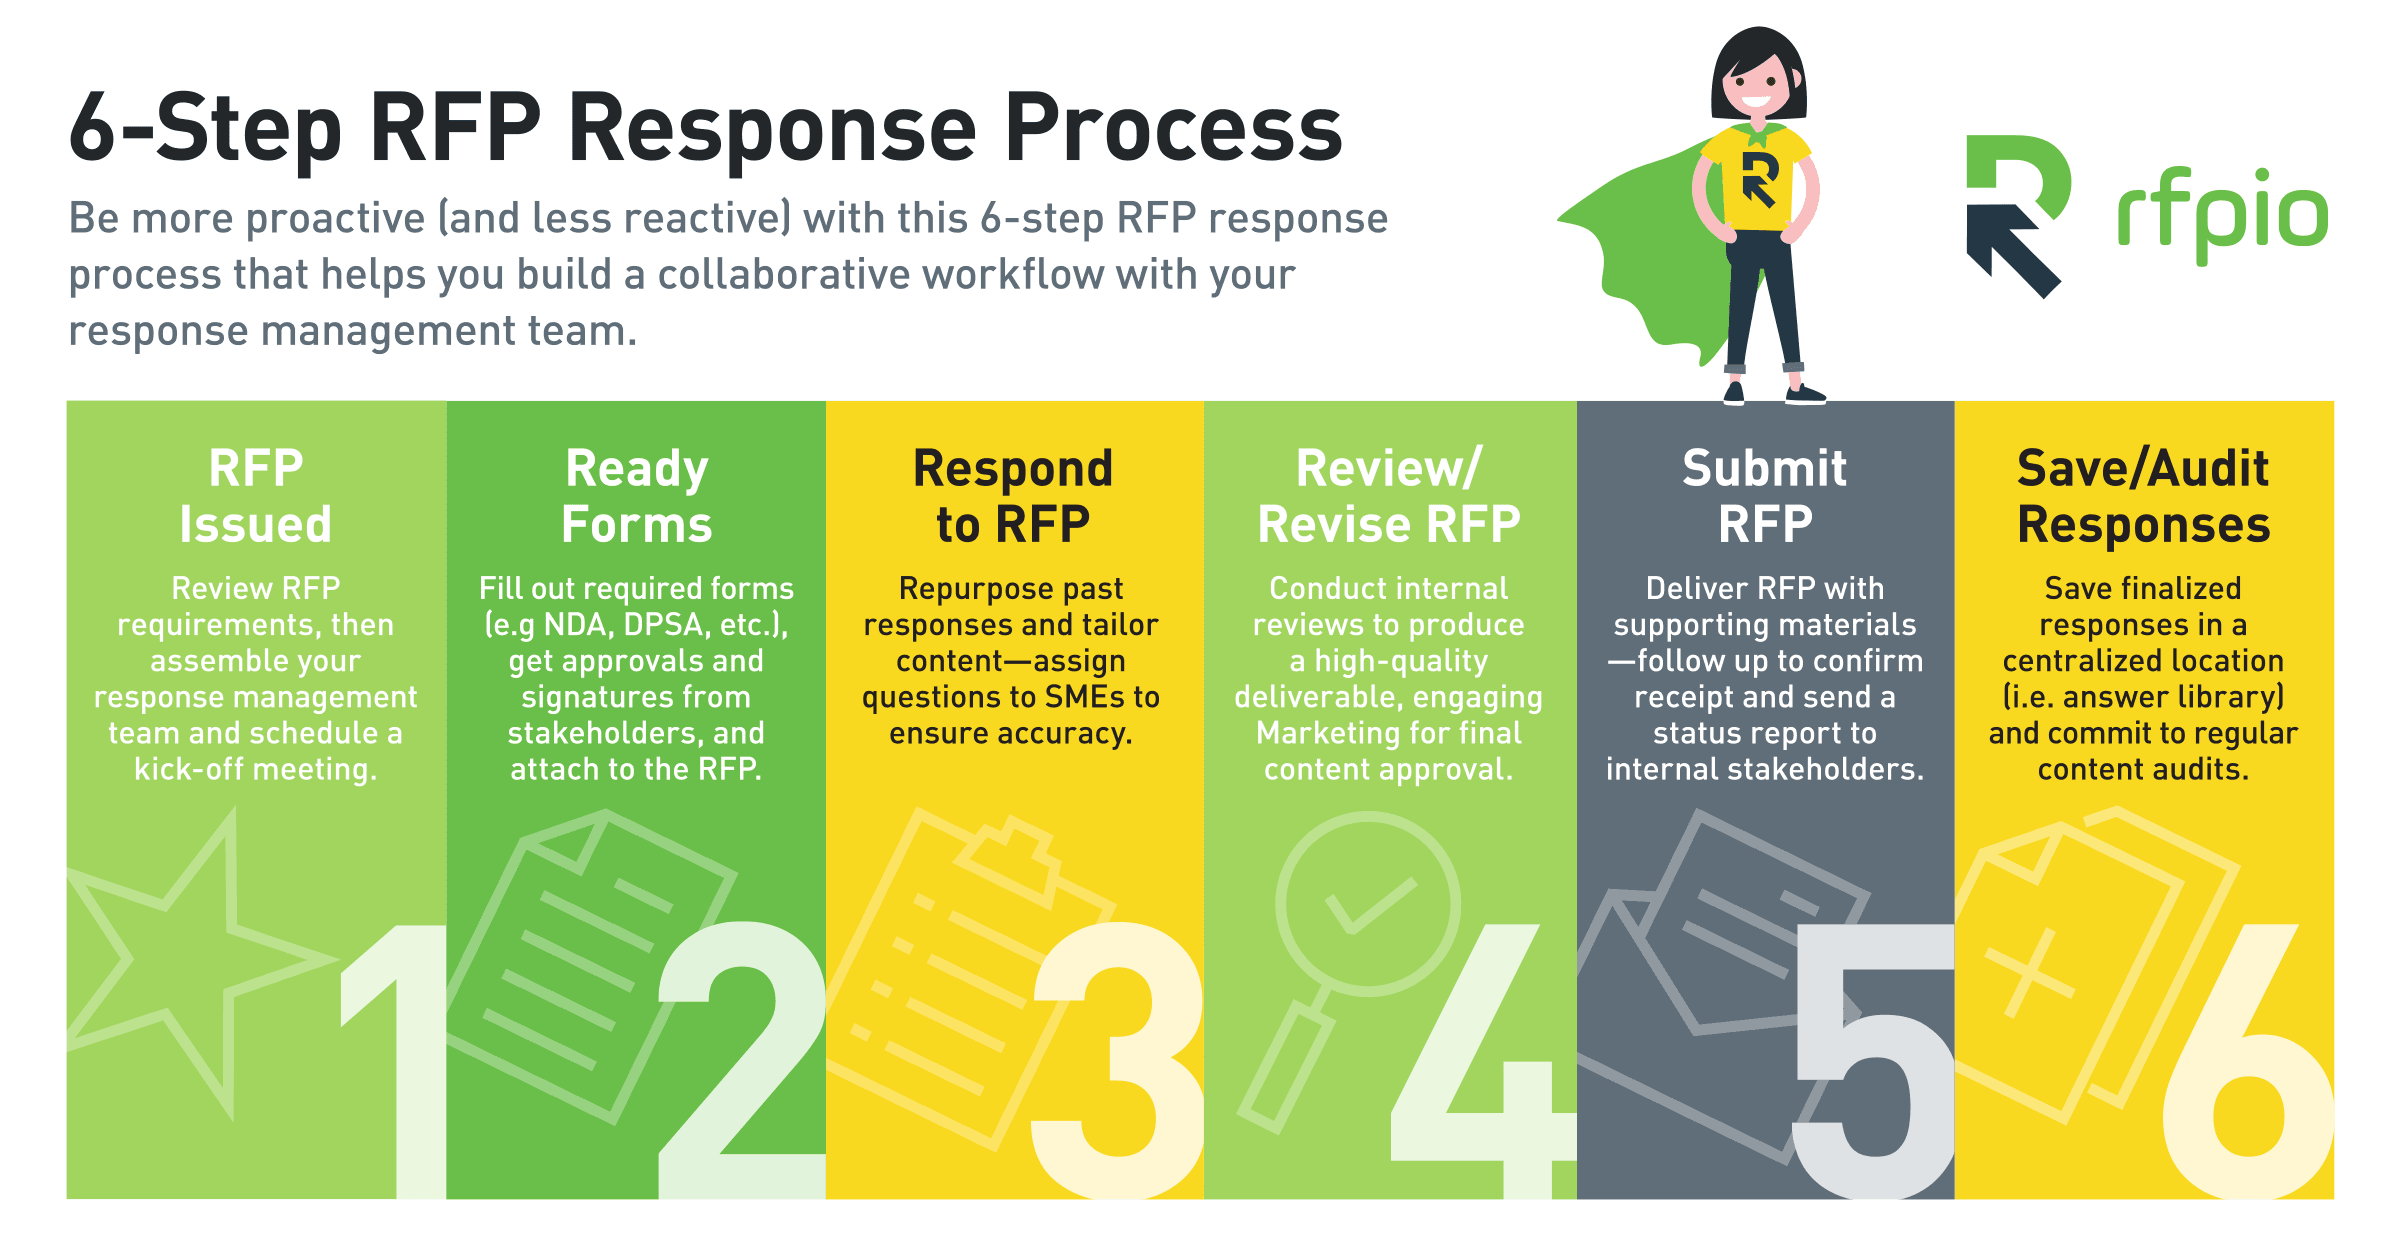 rfp process steps for rfp response process